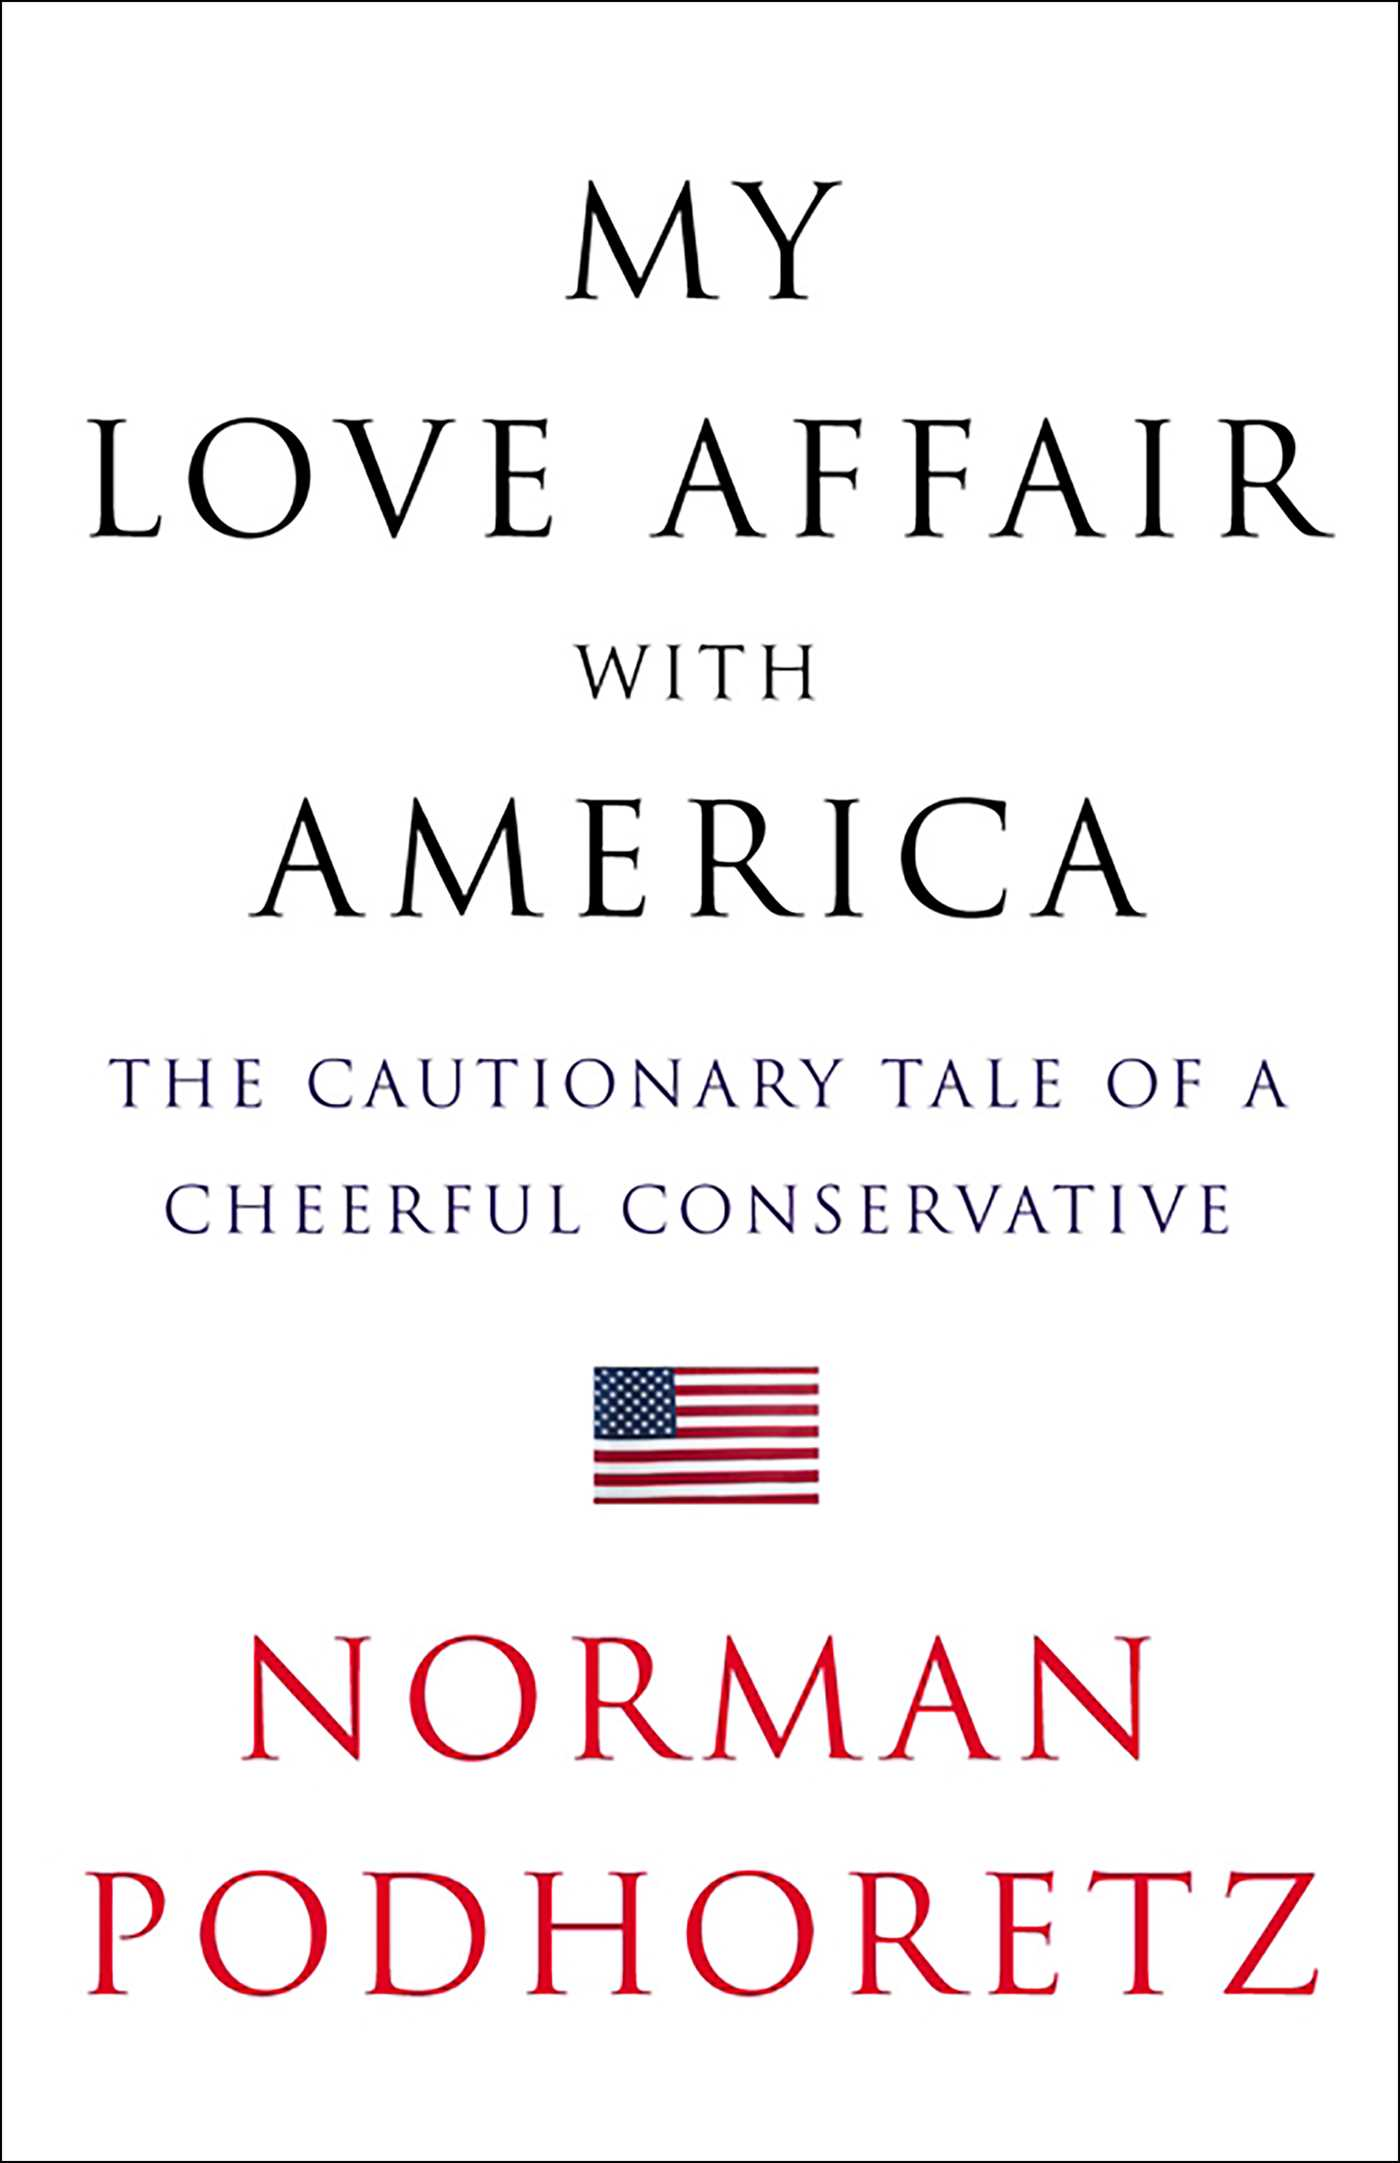 Love Affair Book Cover ~ My love affair with america ebook by norman podhoretz